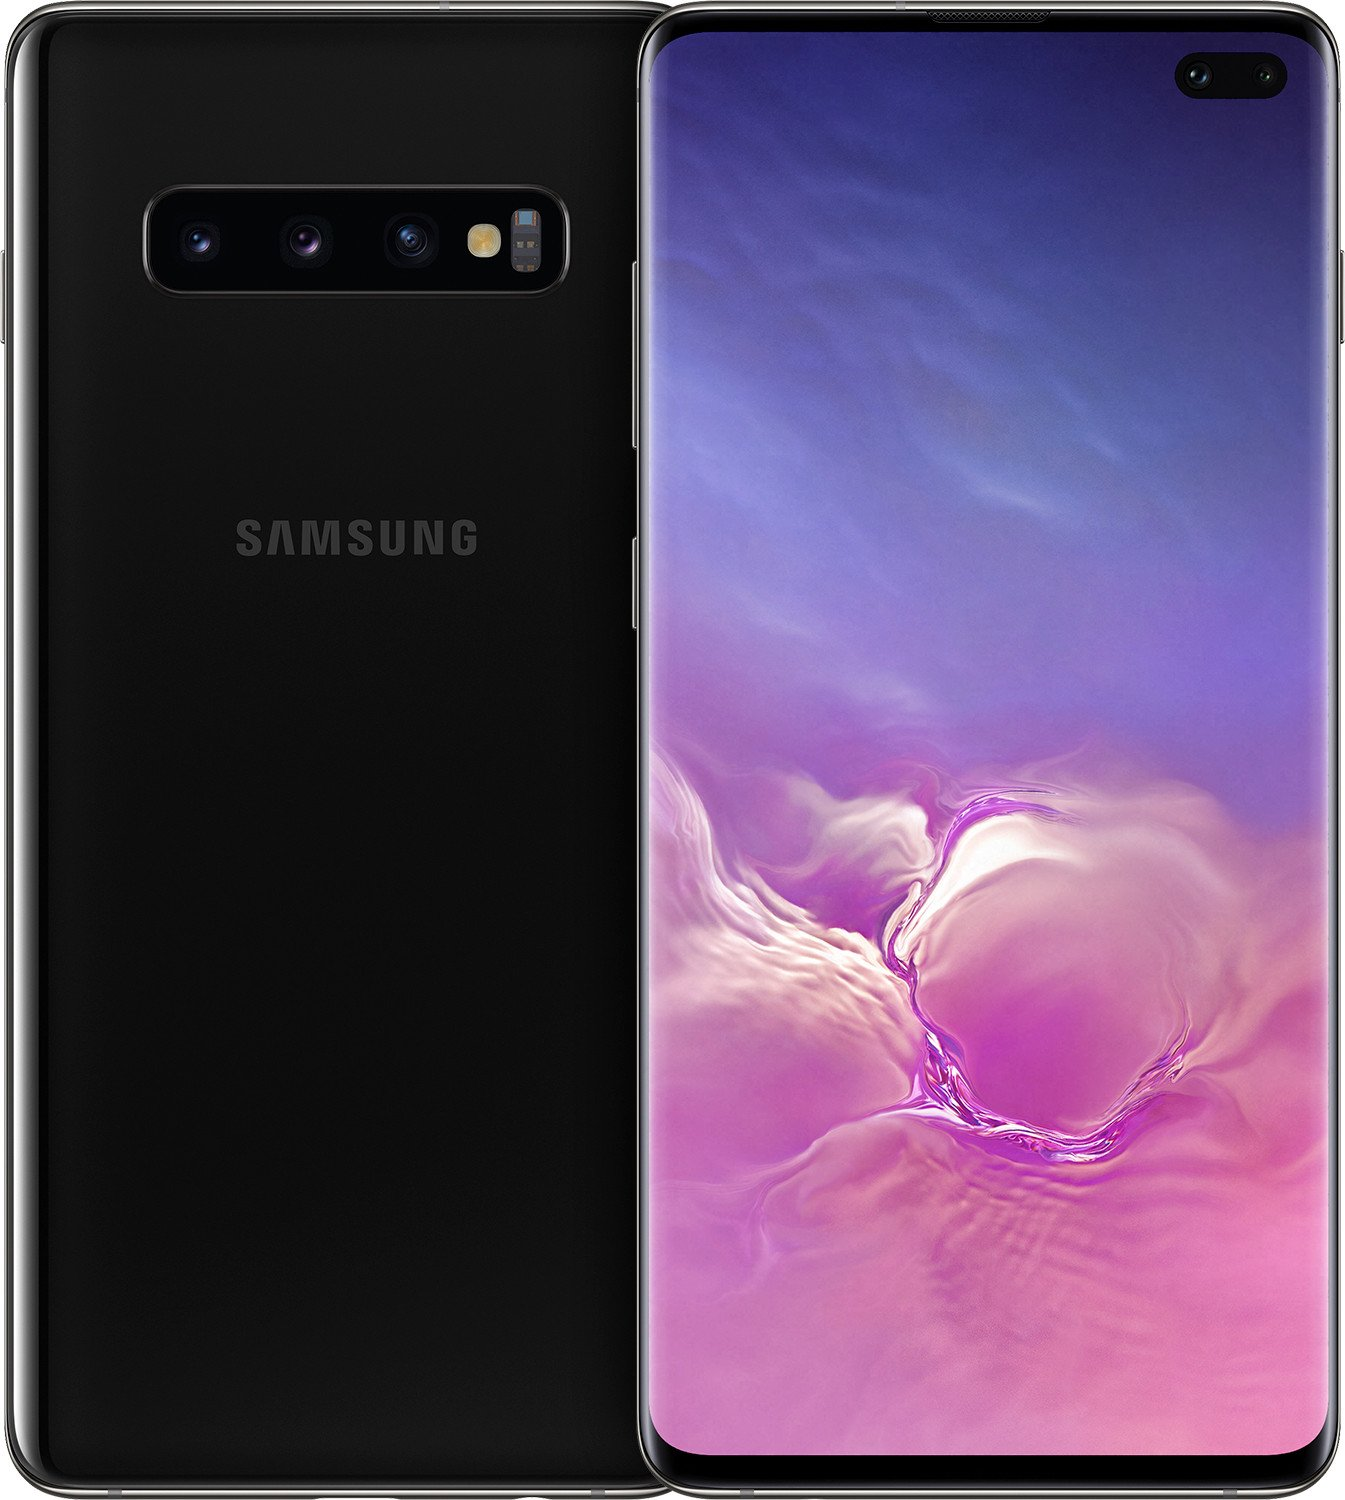 Купить Смартфон Samsung Galaxy S10 Plus SM-G975 DS 128Gb Black (SM-G975FZKD) UA-UCRF